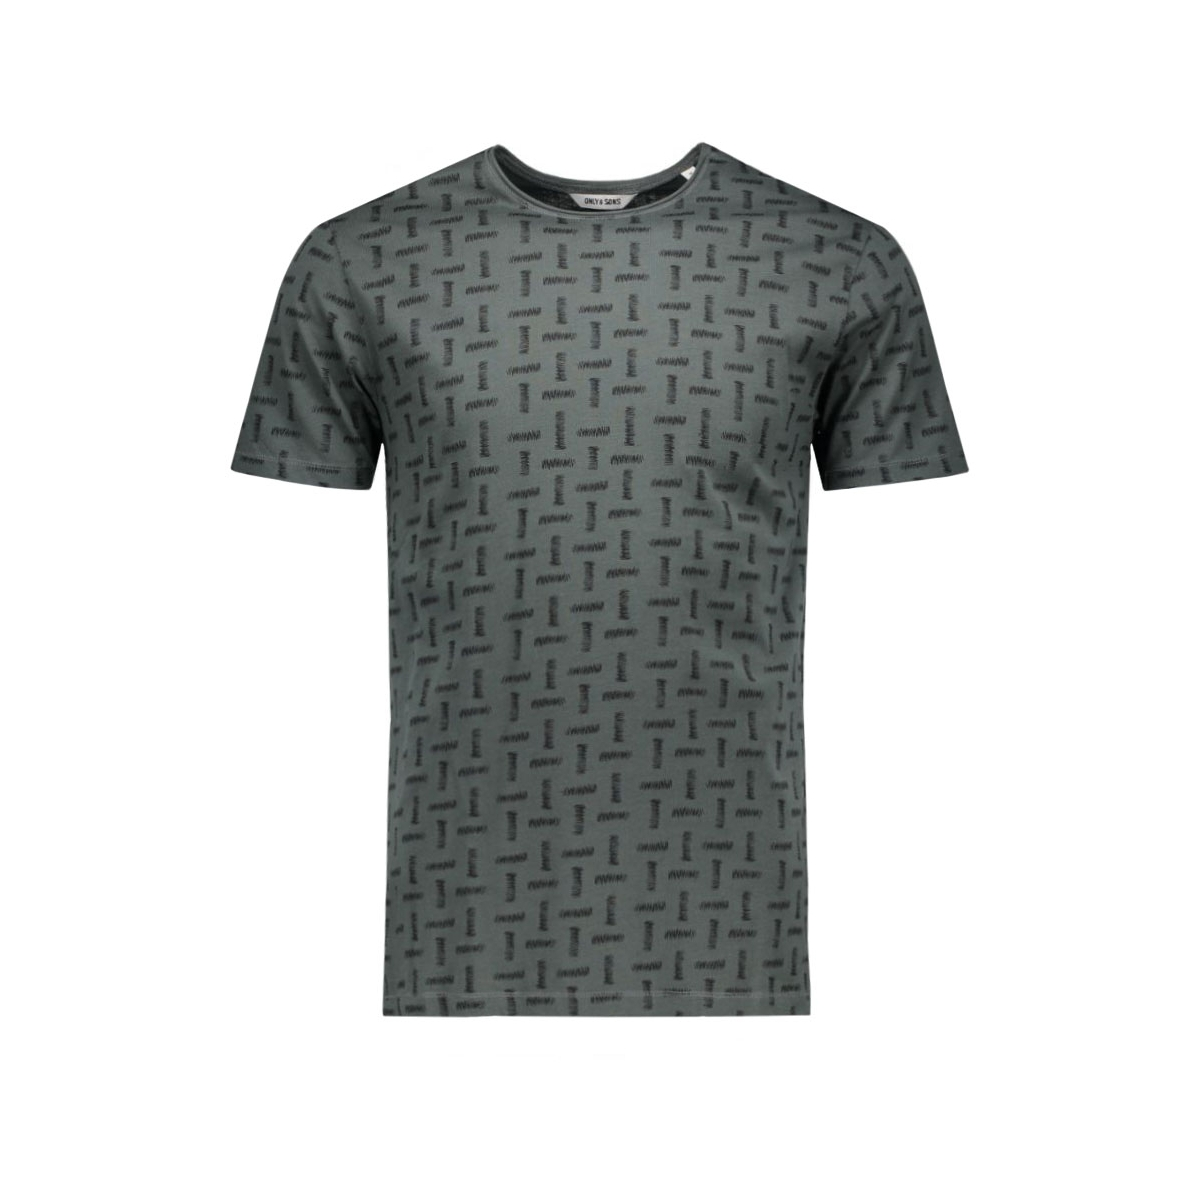 onskomma fitted aop tee 22004290 only & sons t-shirt utrban chic